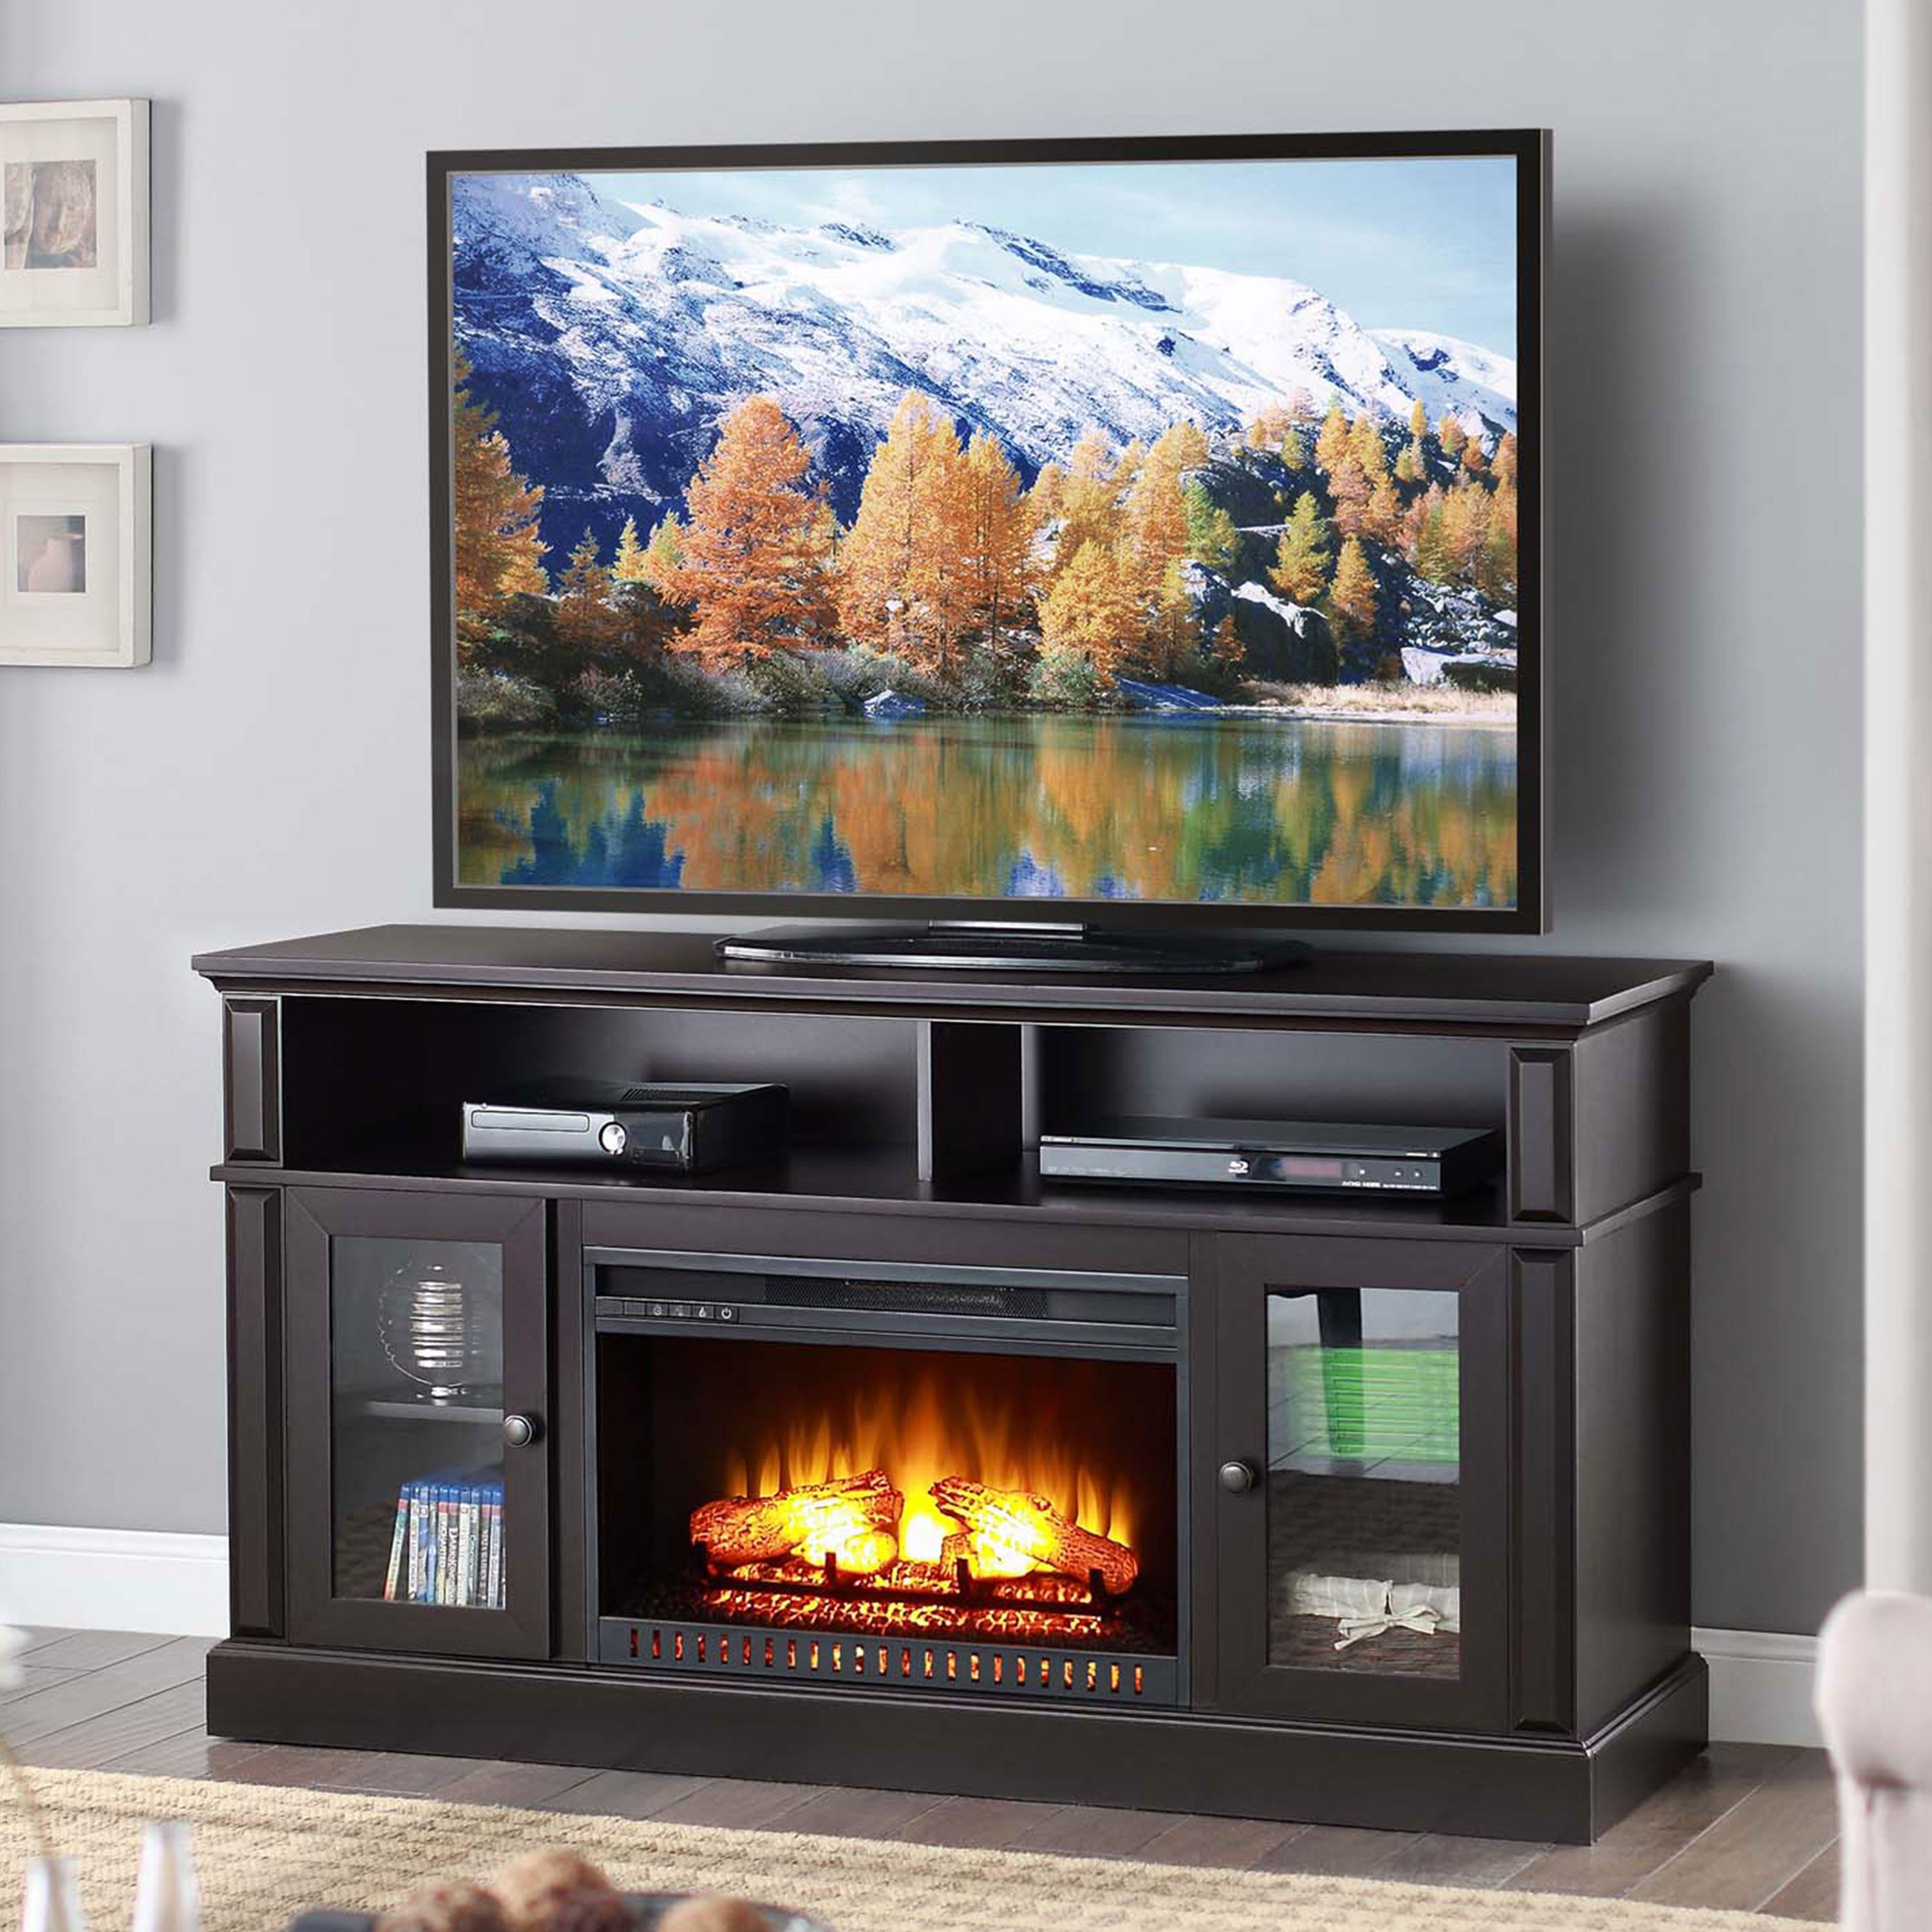 Whalen Barston Media Fireplace for TV's up to 70 Multiple Finishes